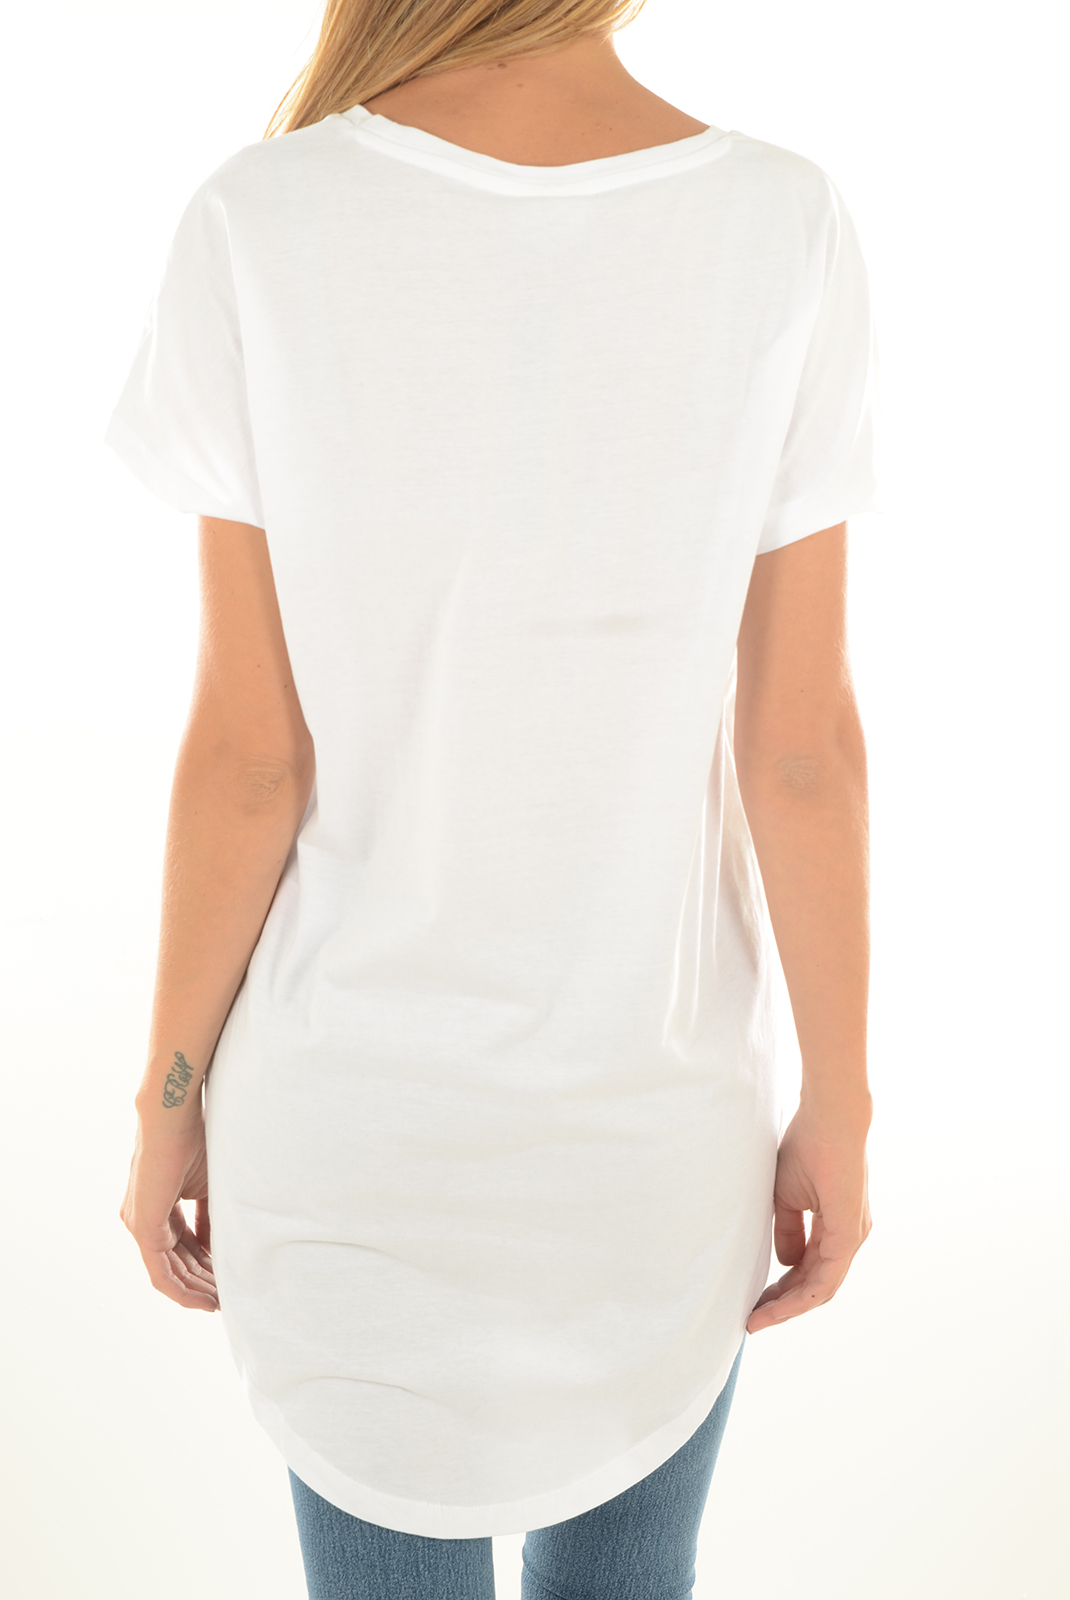 Tops & Tee shirts  Noisy May FLASH S/S HIGH LOW BRIGHT WHITE